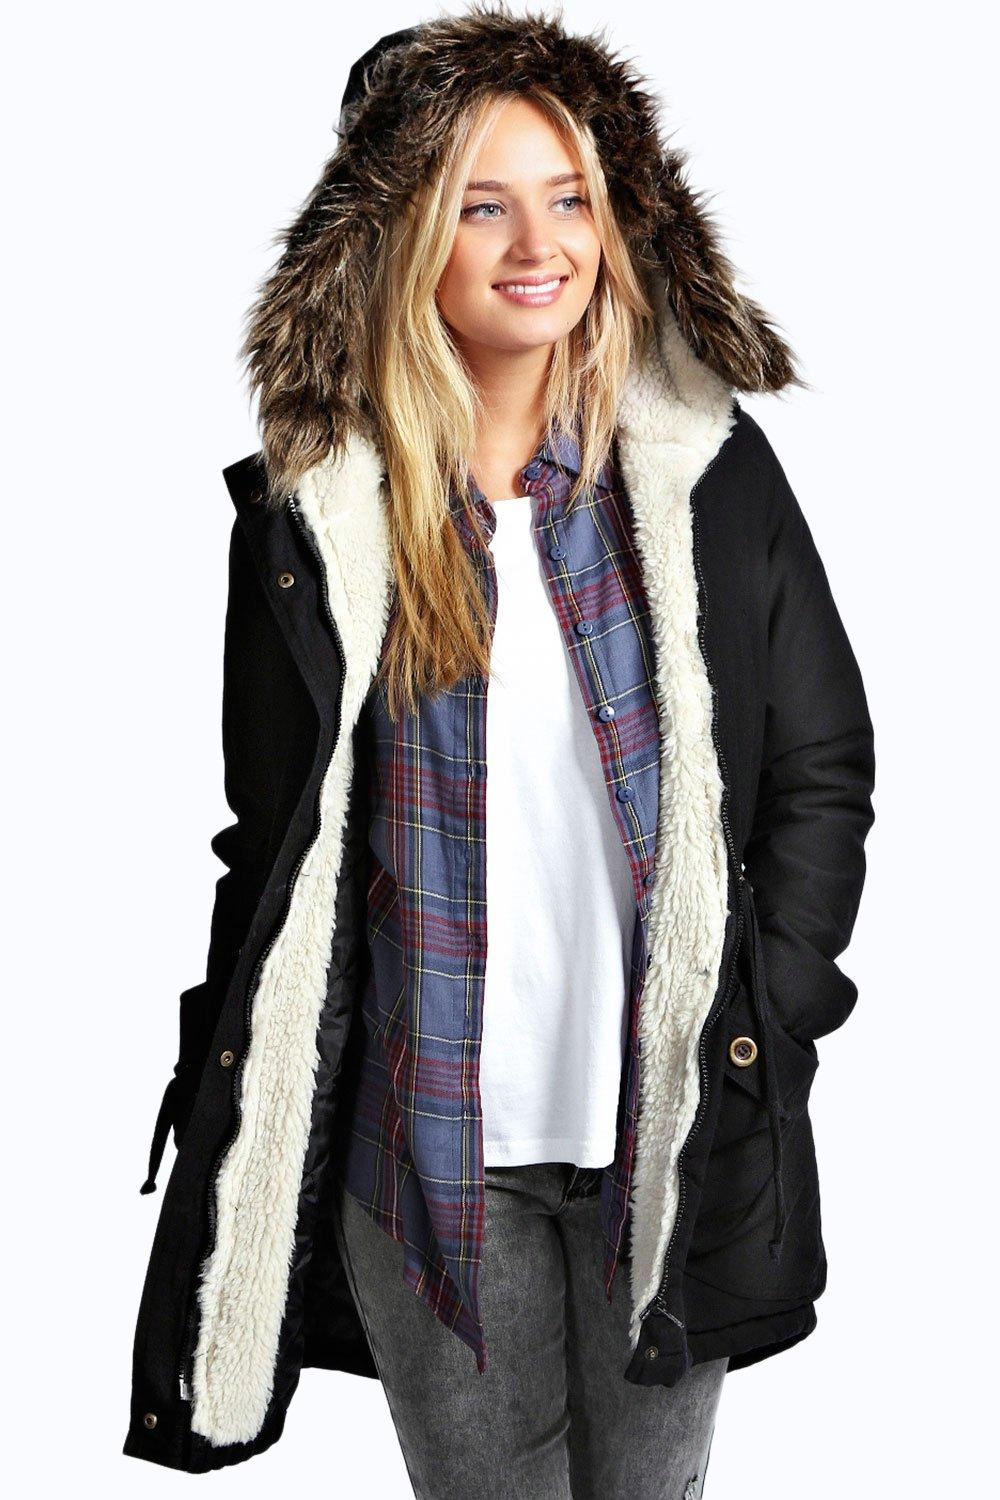 Black Parka Coat With Fur Hood Coat Nj